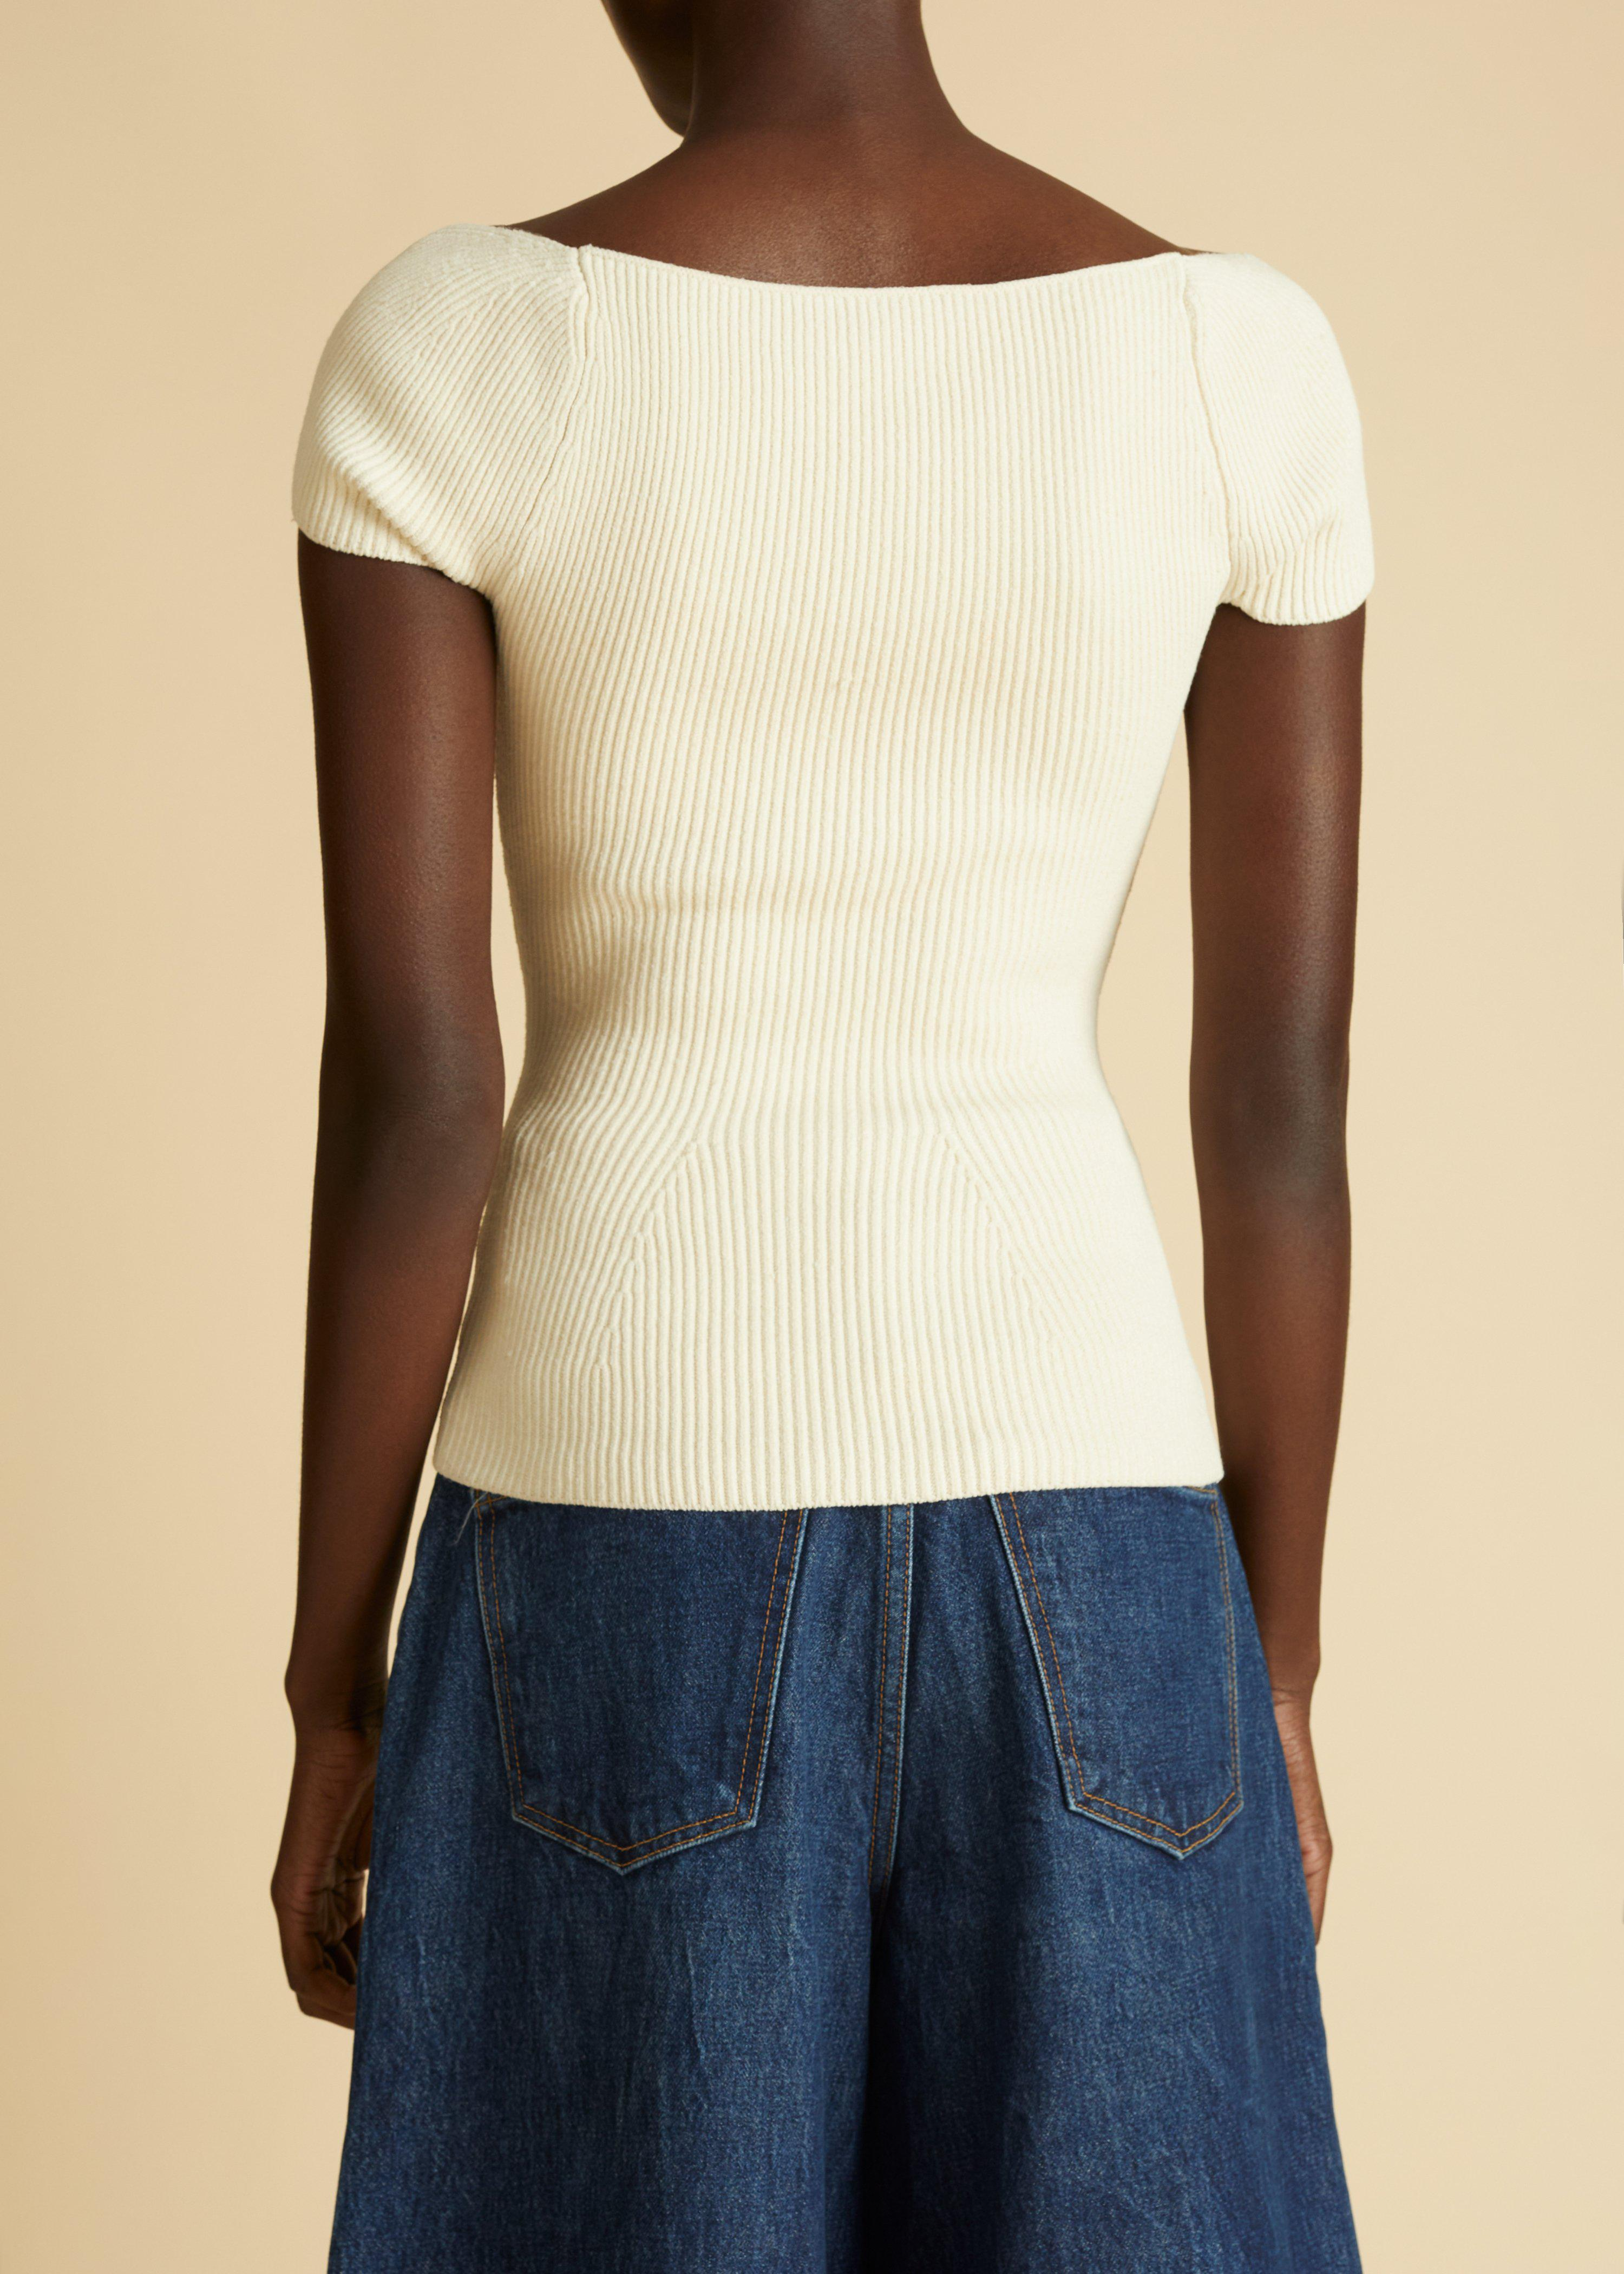 The Ista Top in Ivory 2